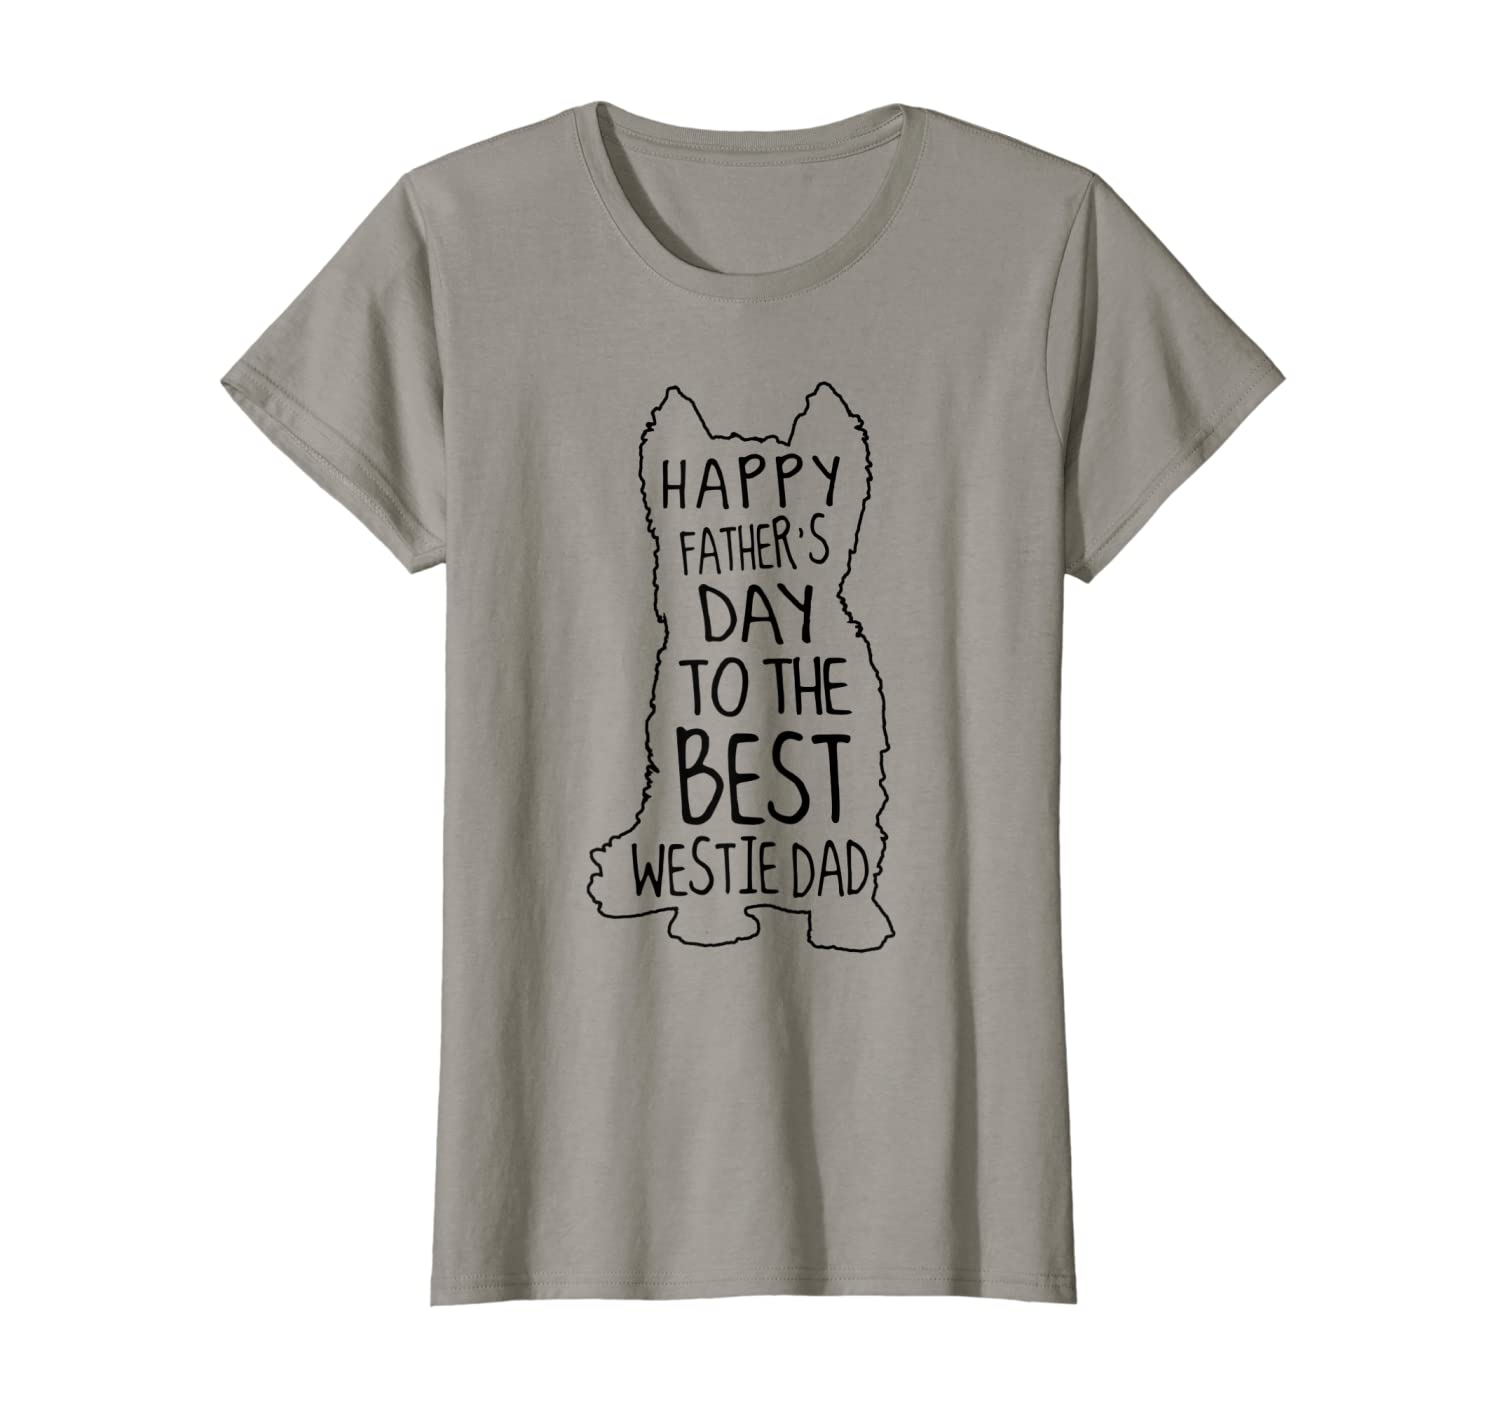 Happy Fathers Day to Best Westie Dad Papa T-Shirt Unisex Tshirt